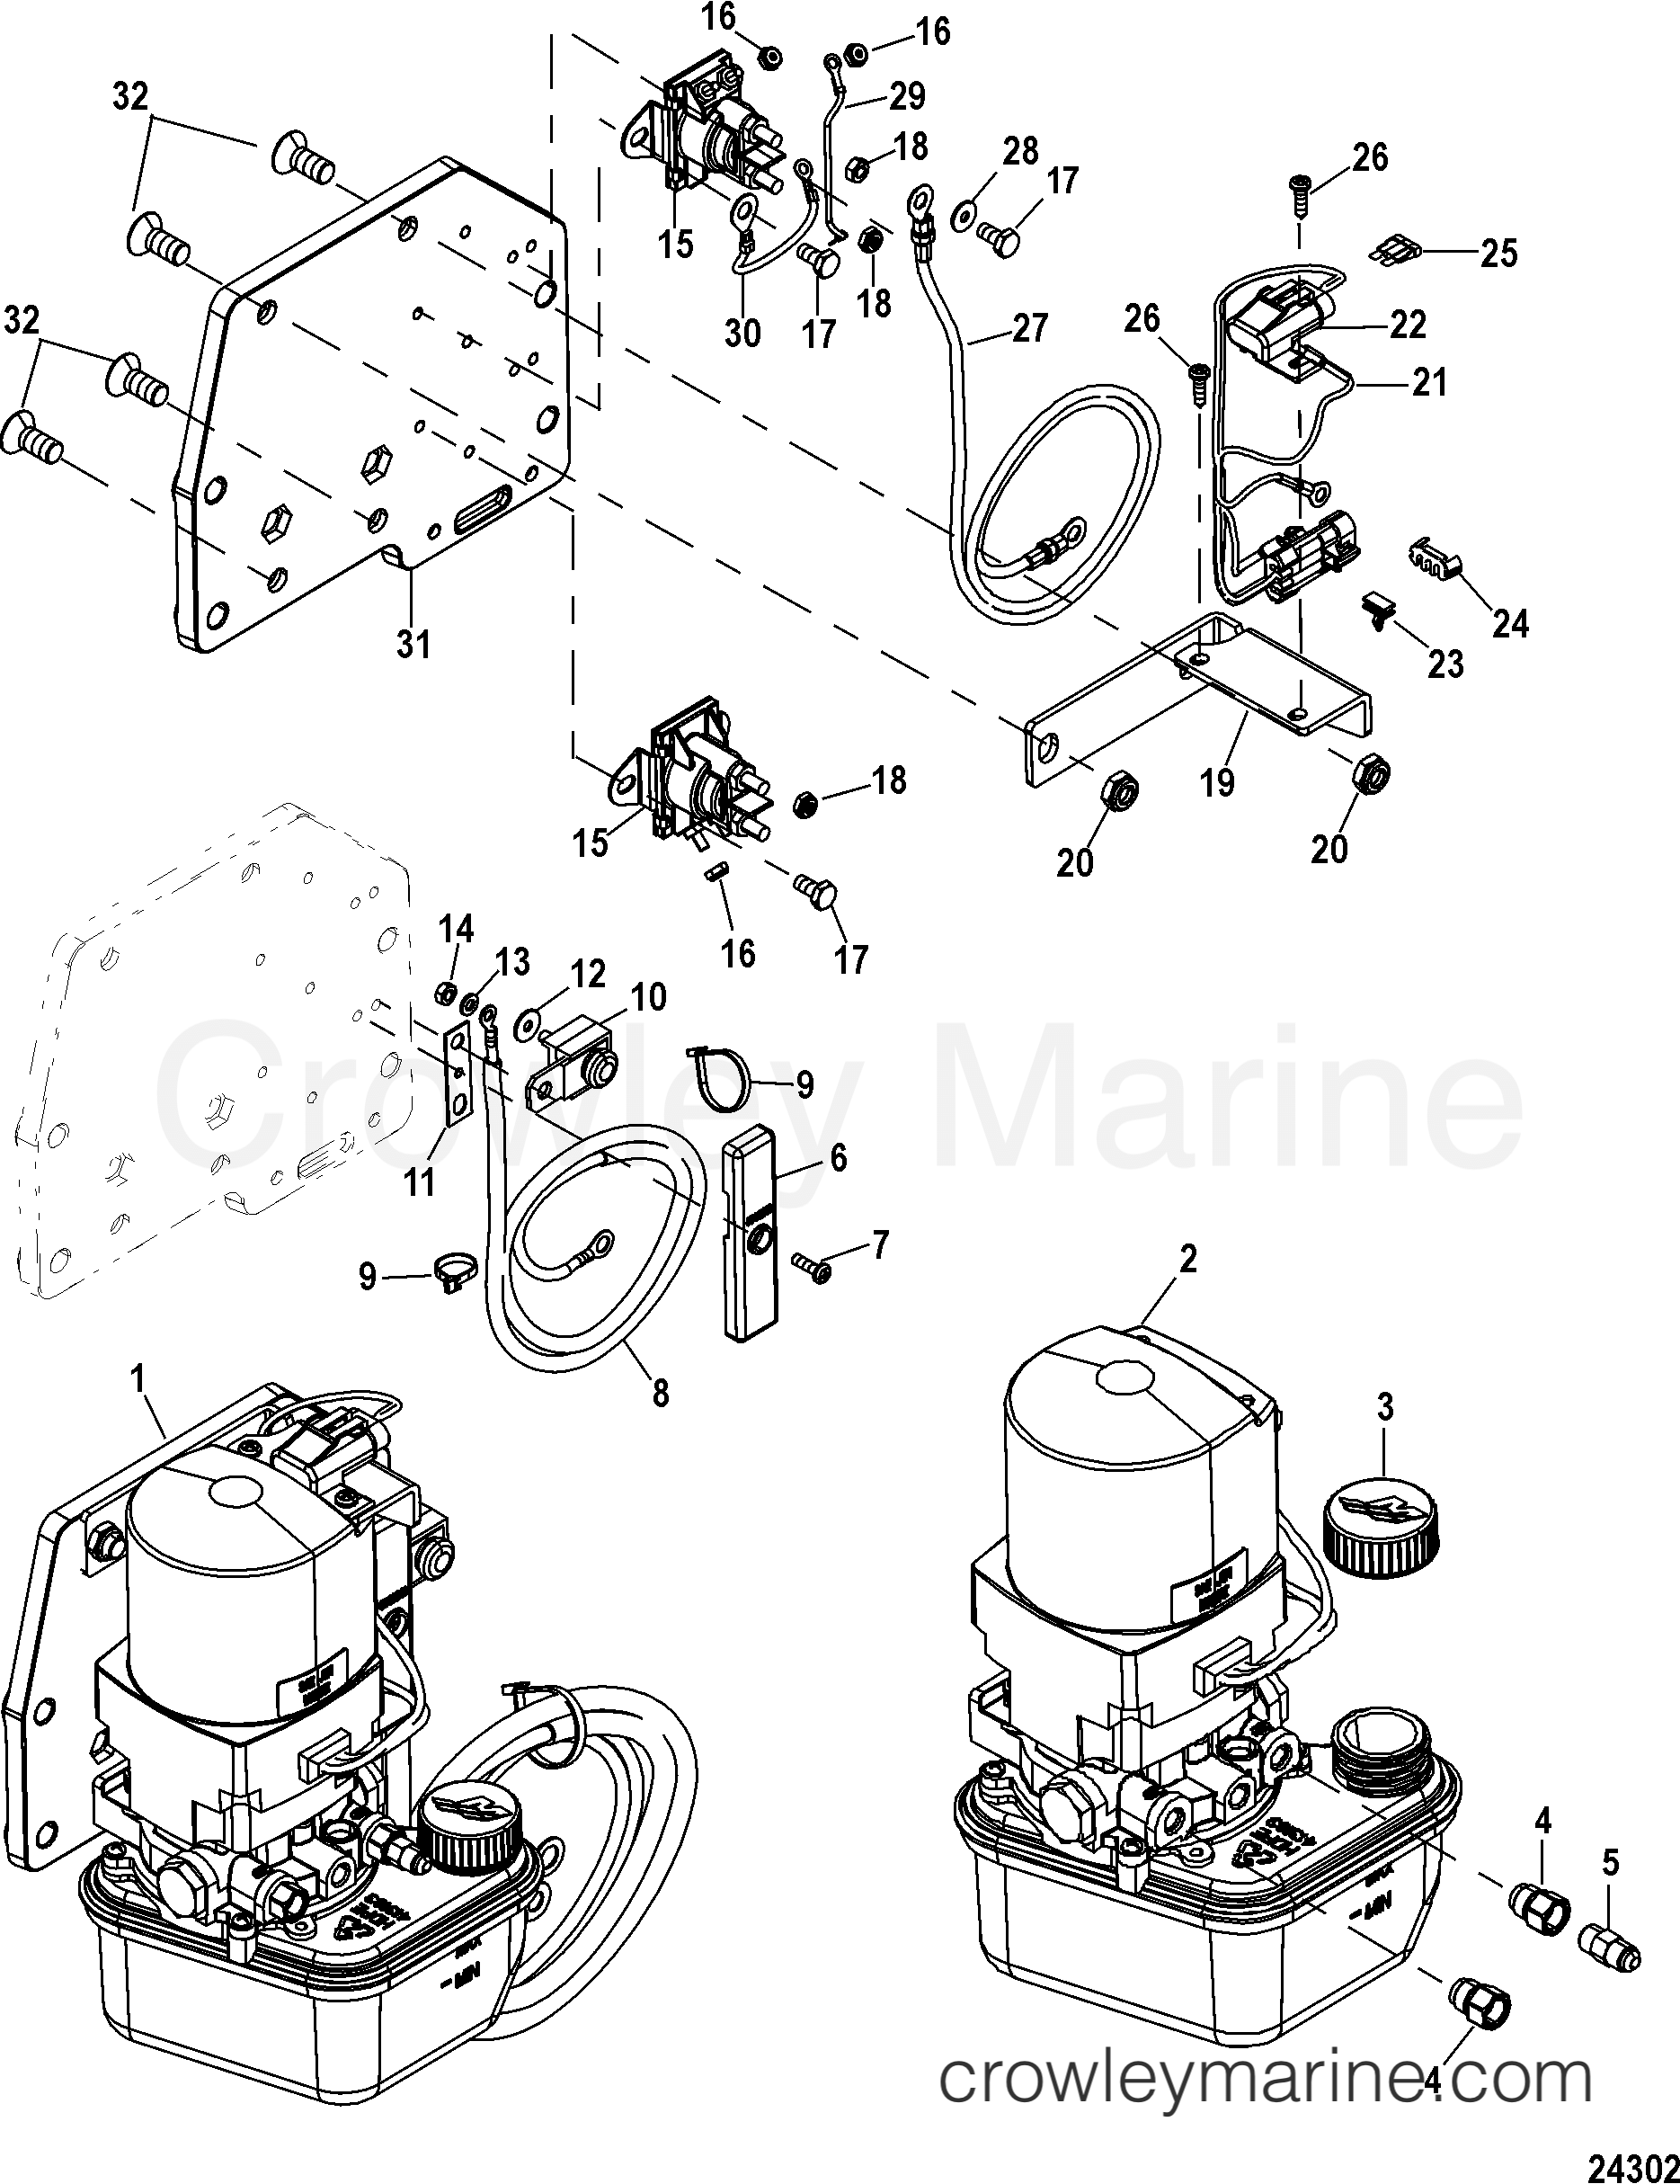 Trim Pump Assembly843017t03 1991 Mercruiser Race Sterndrive Ssm6 Outdrive Wiring Diagrams 10001 5604100dh Assembly